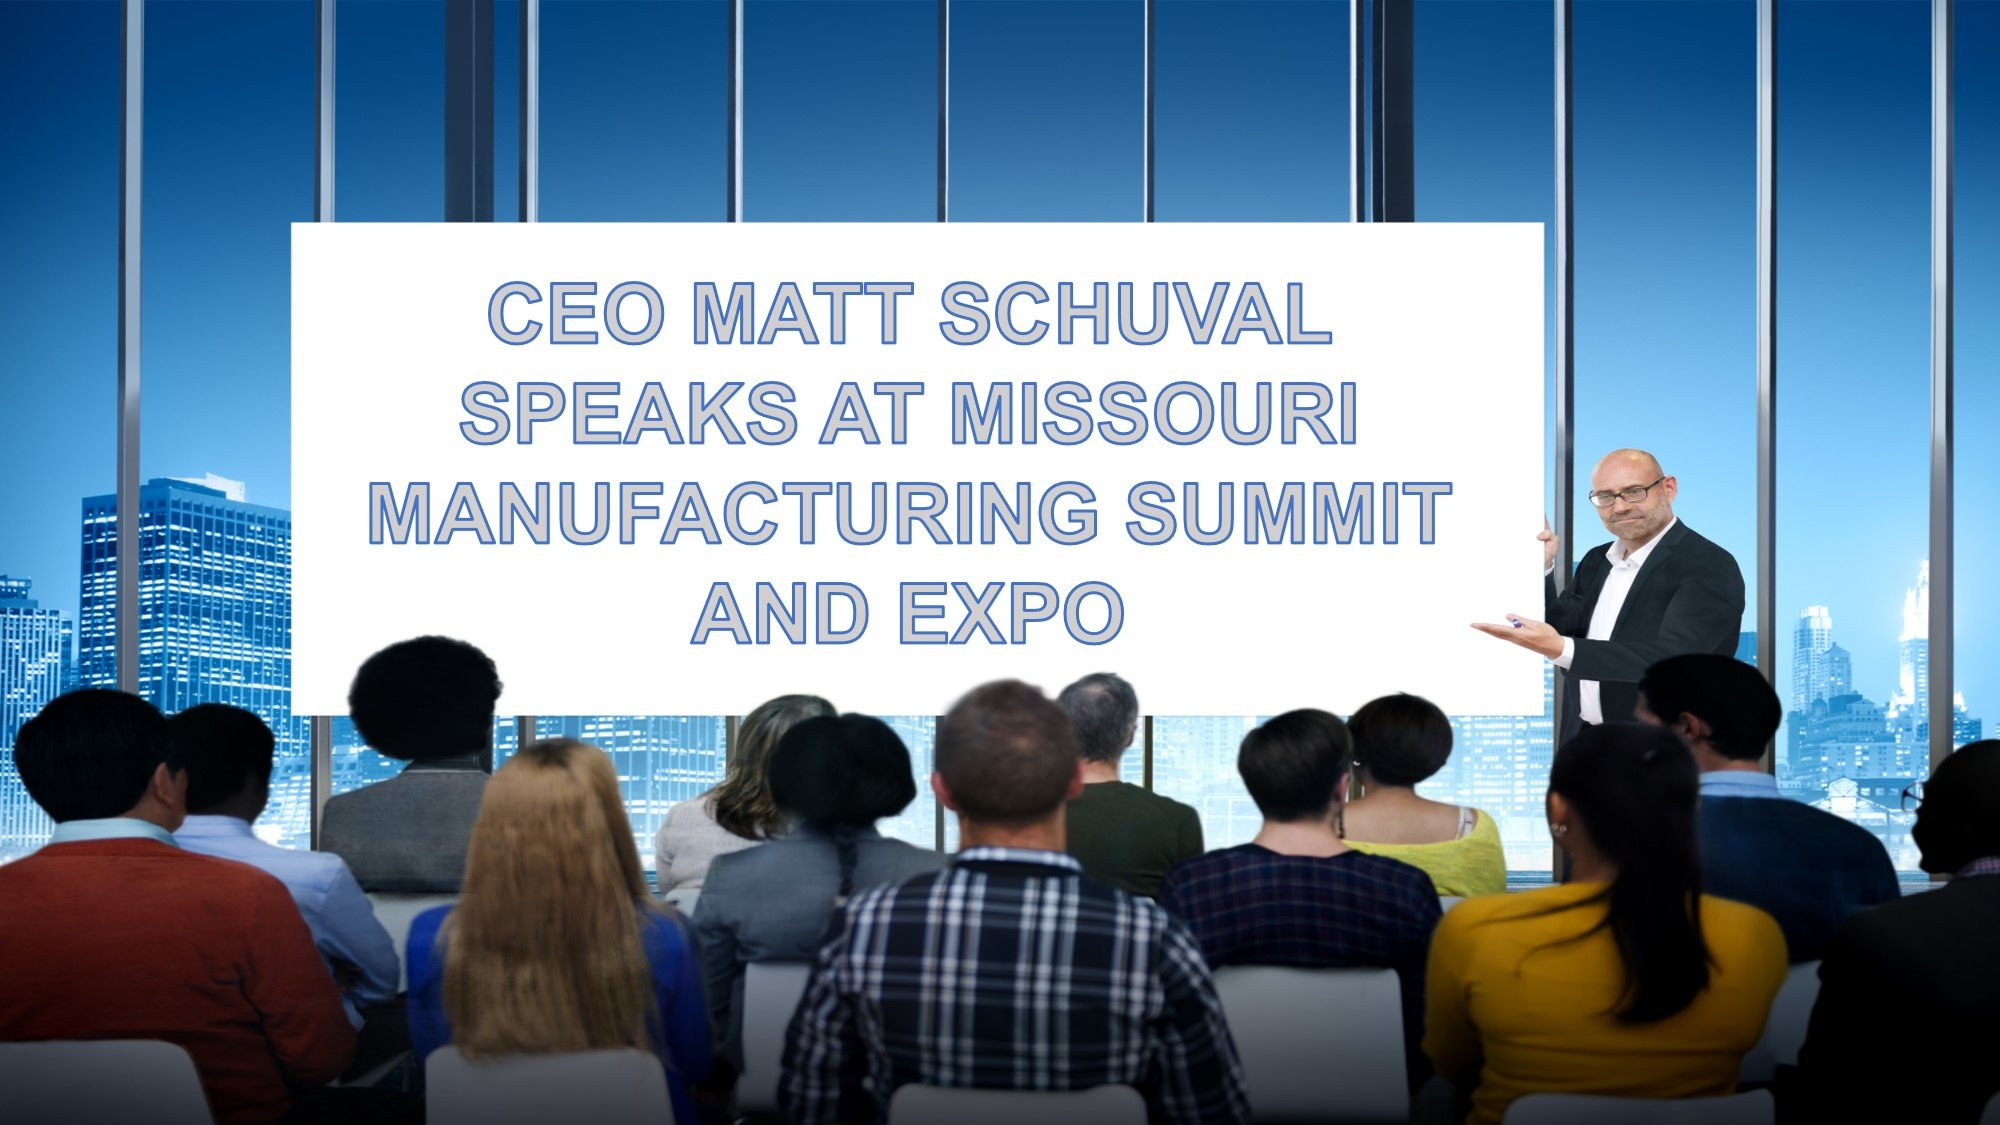 CEO Matt Schuval Speaks at Missouri Manufacturing Summit and Expo